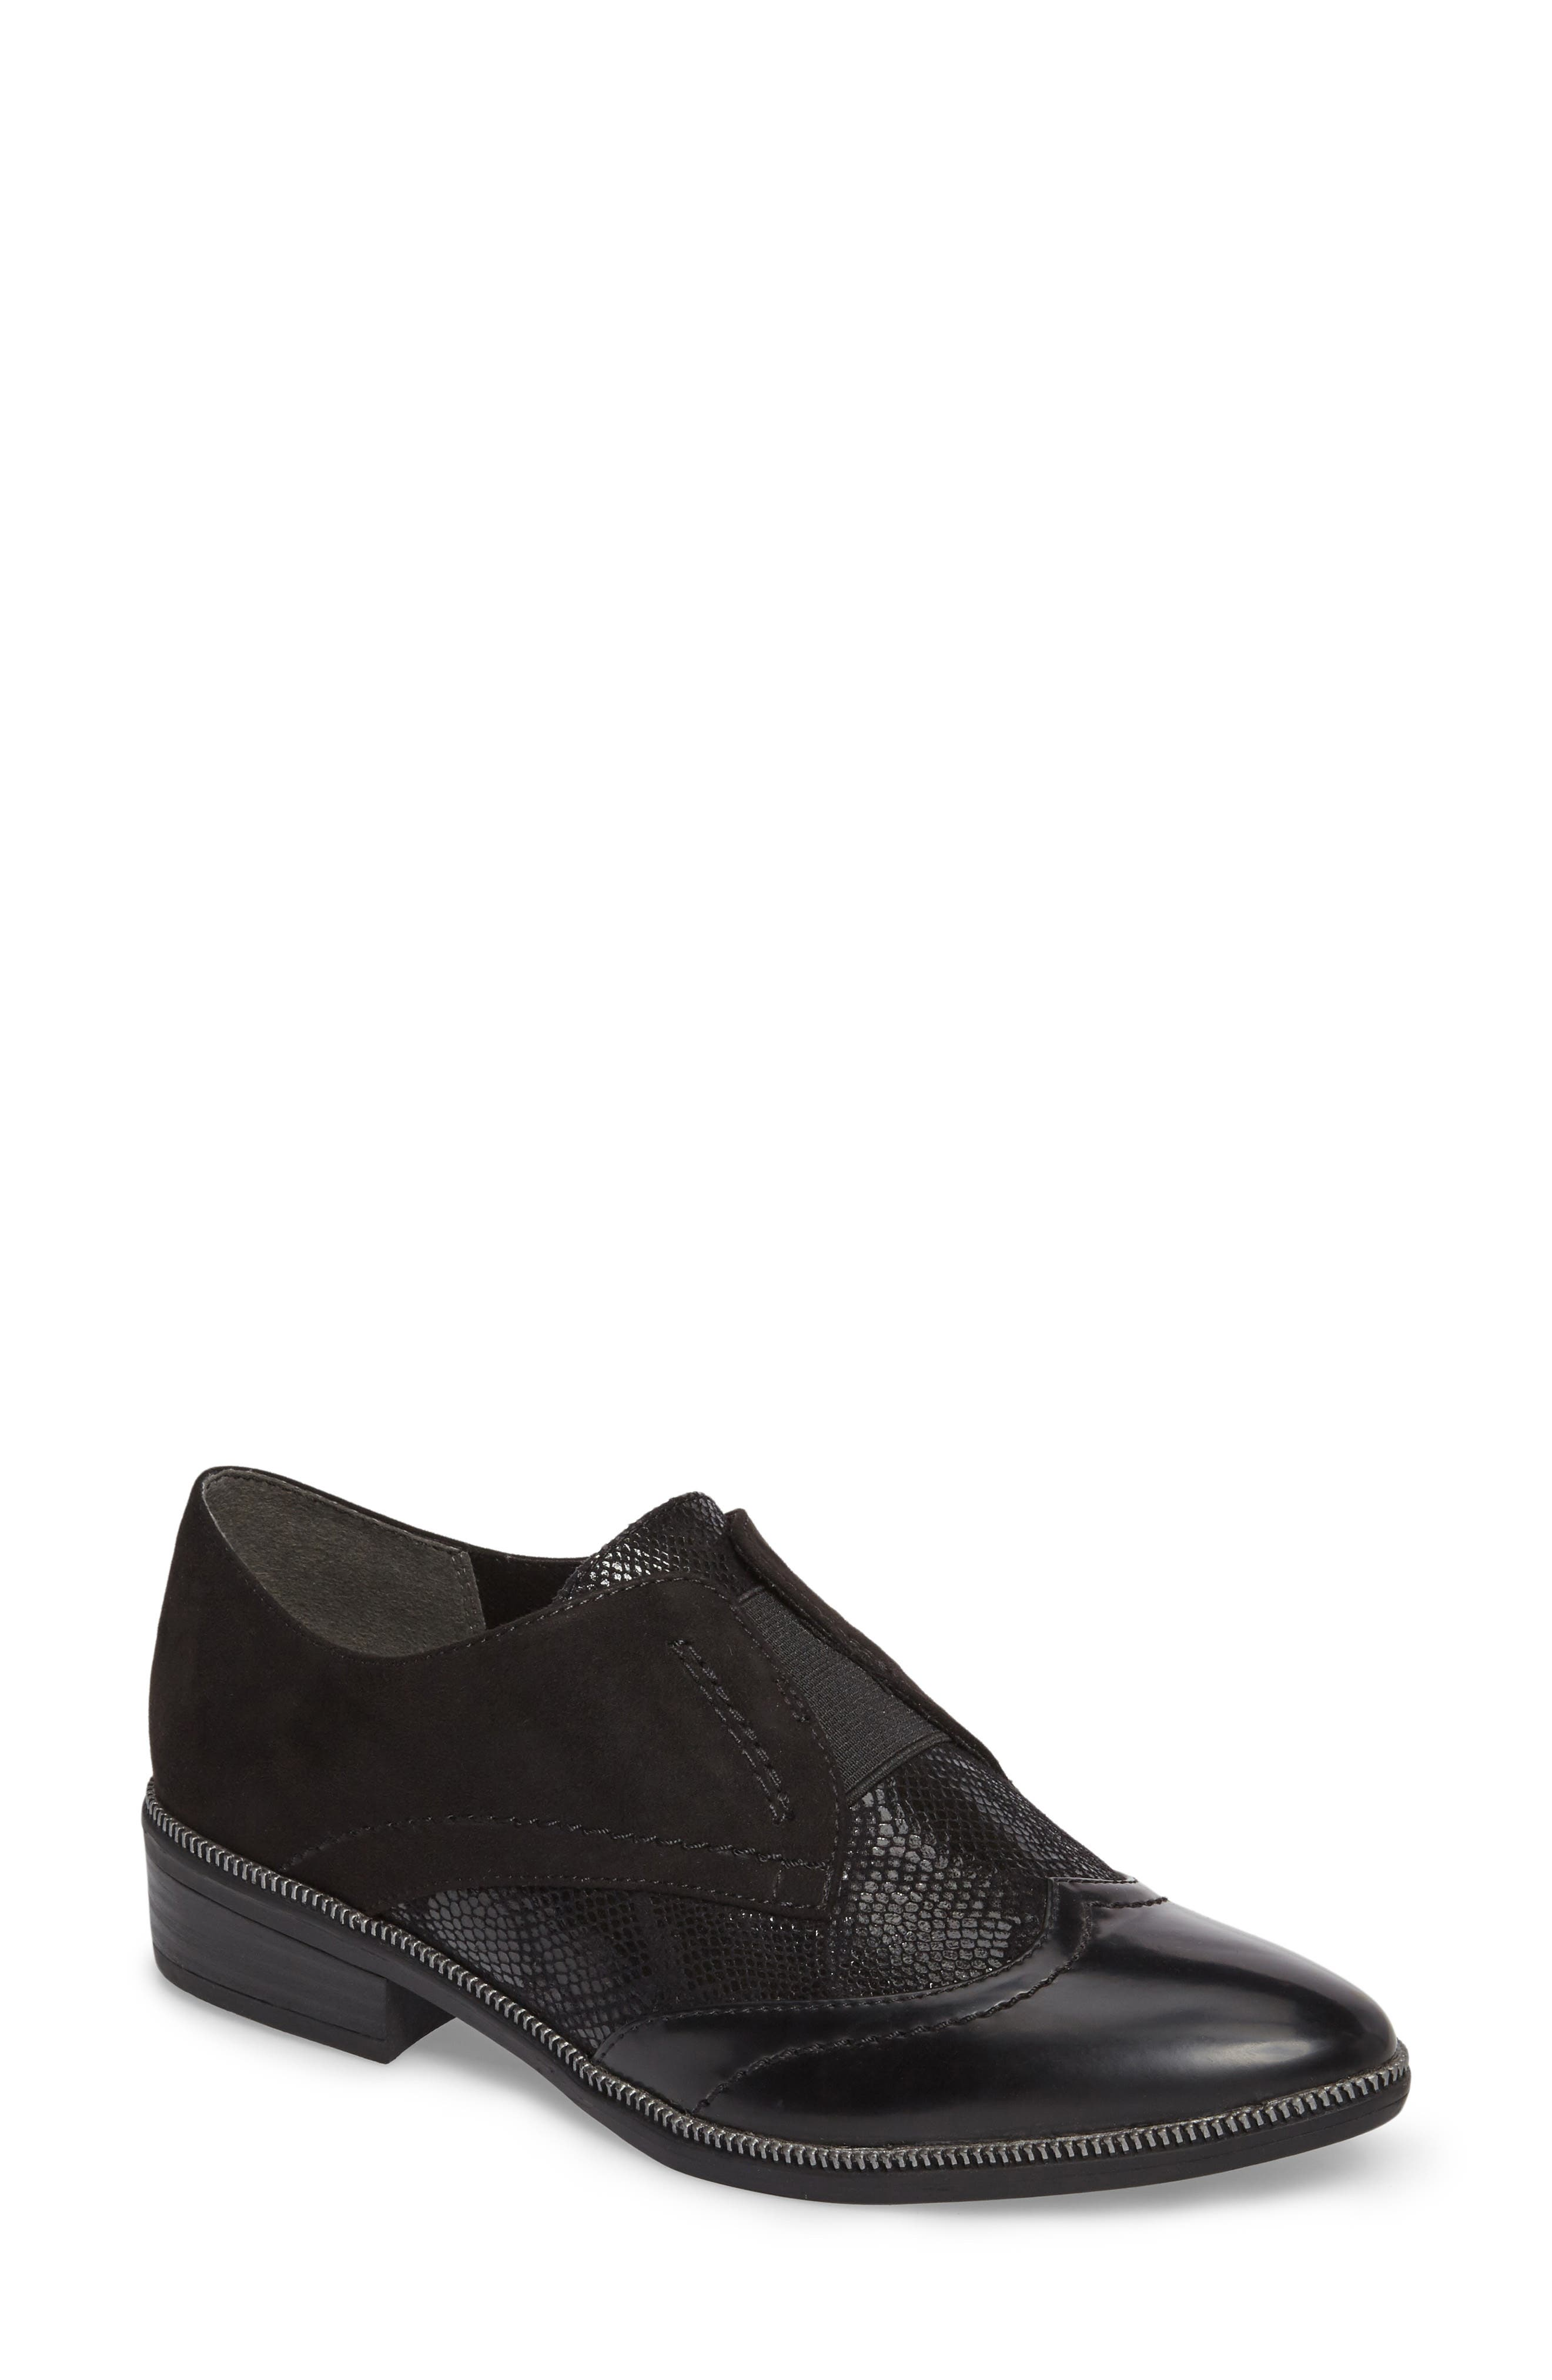 Tamaris 'Phanie' Slip-On Oxford (Women)